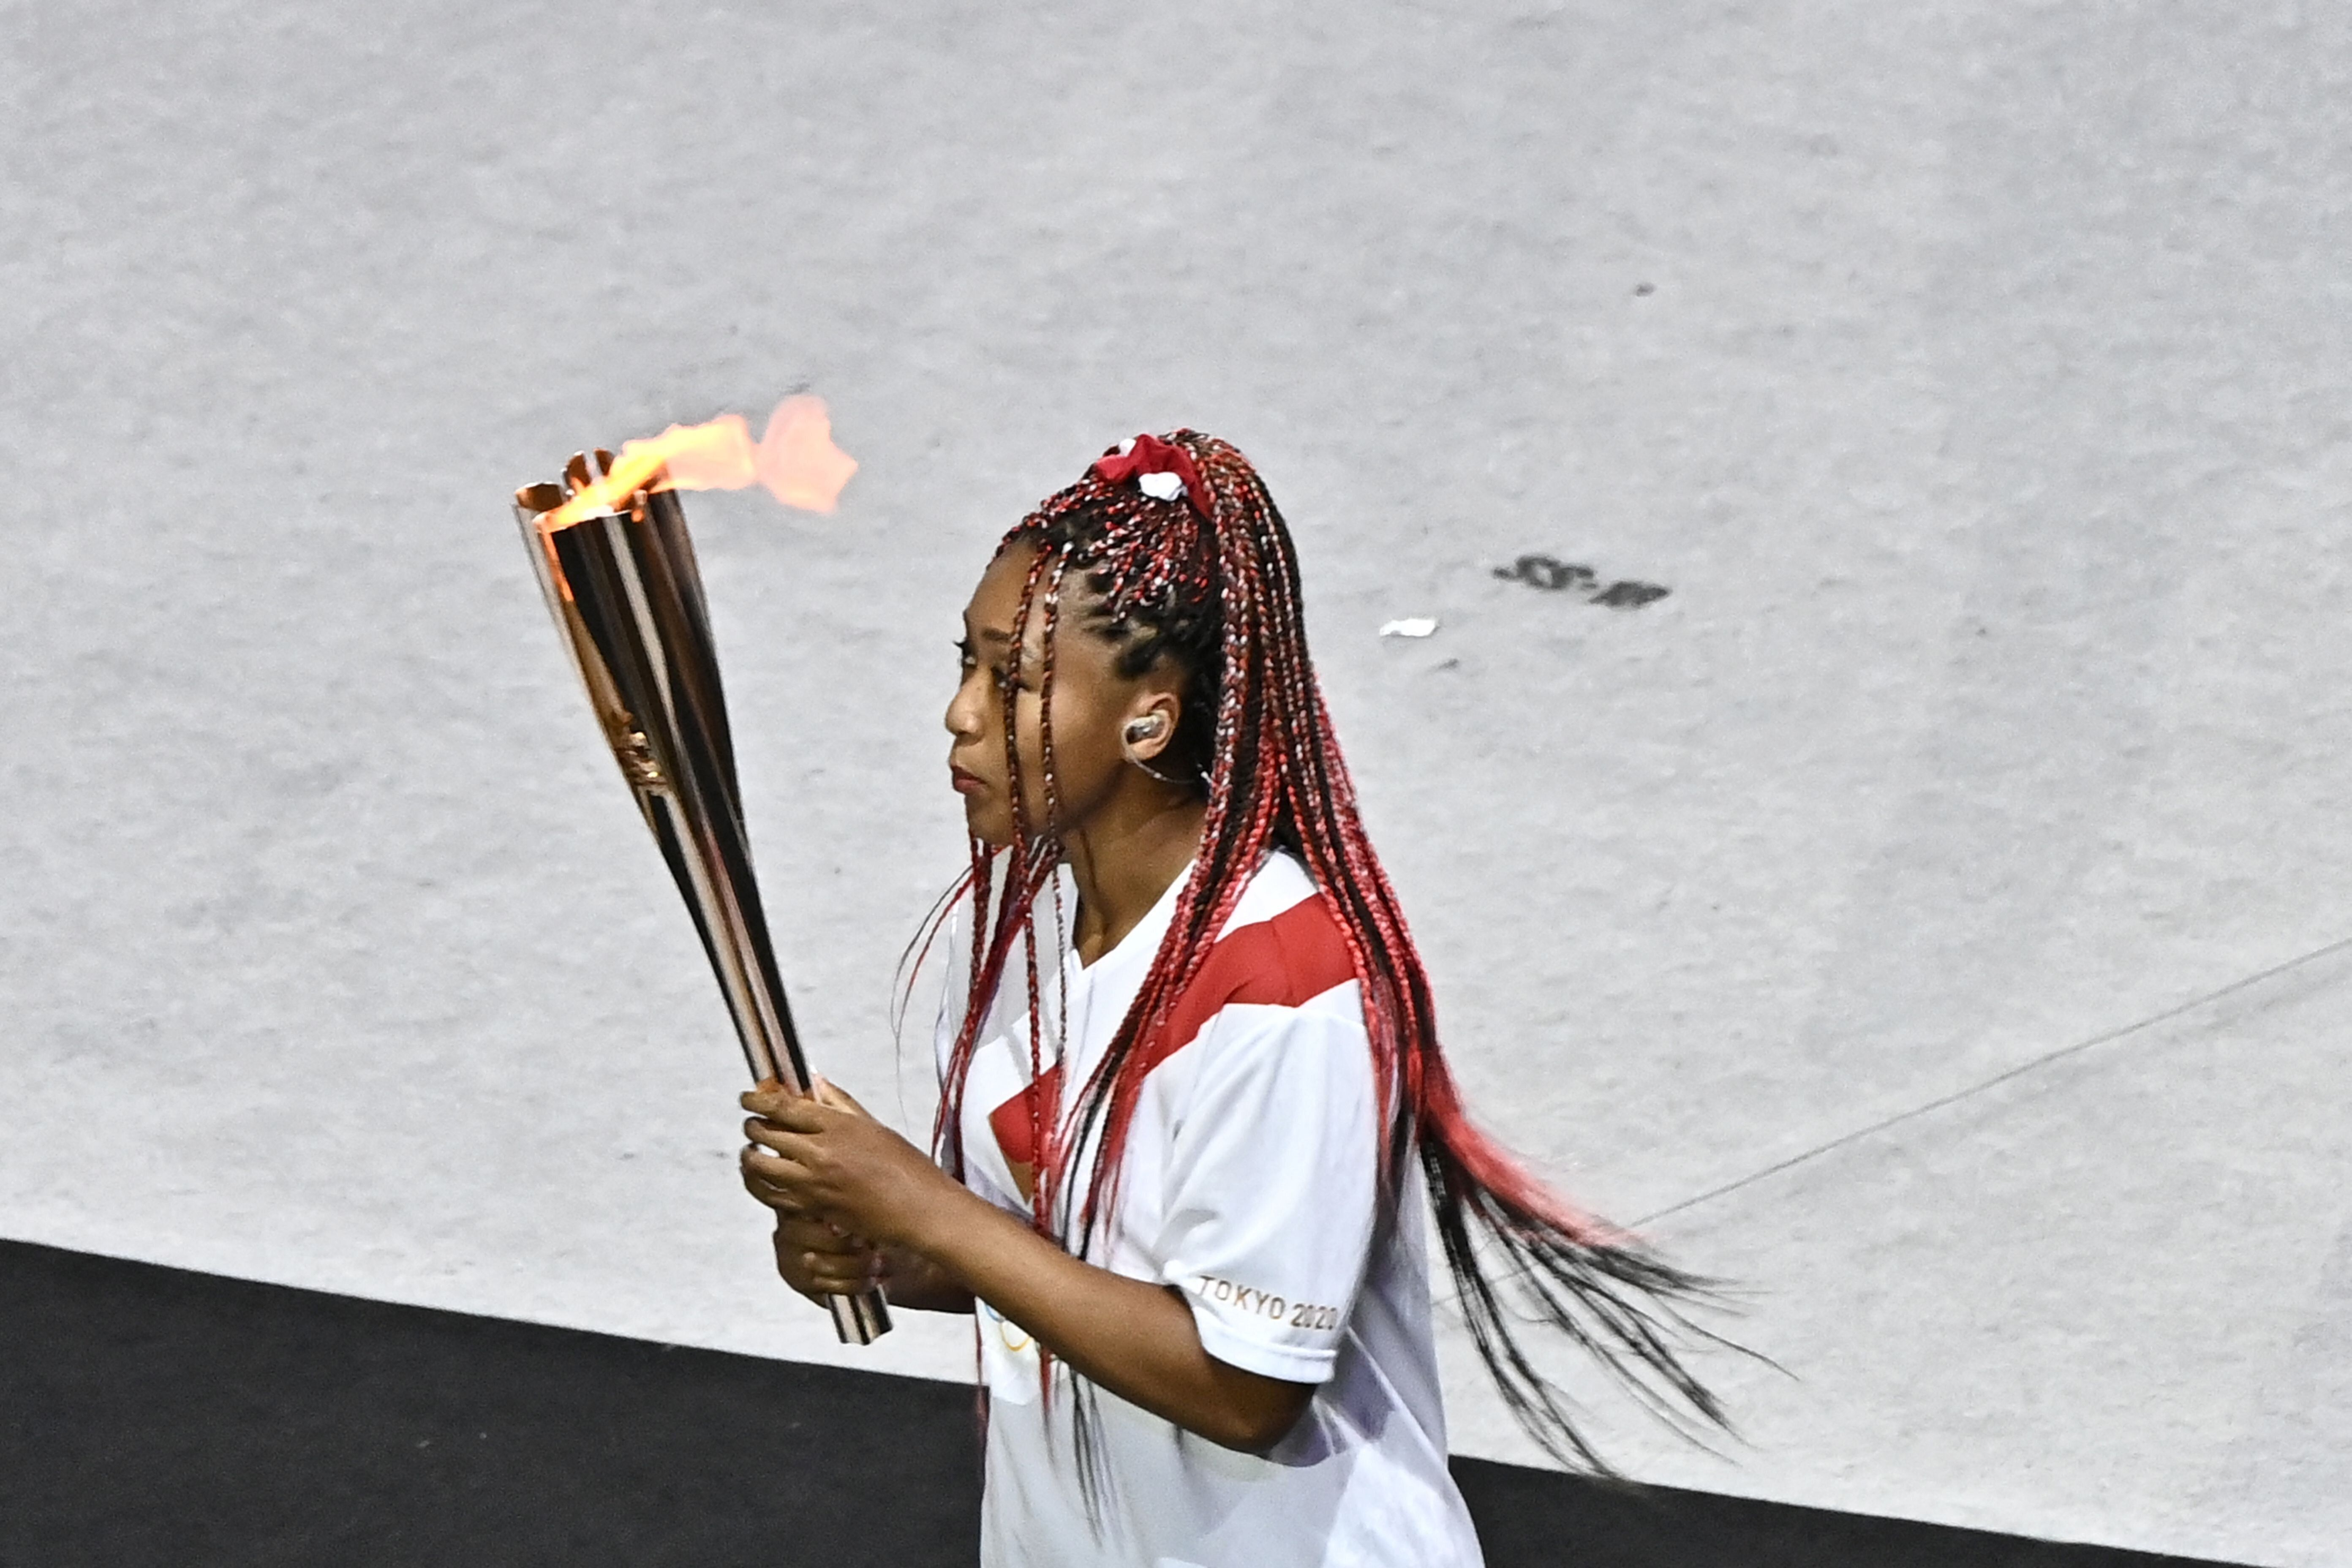 Team Japan's Naomi Osaka carries the Olympic torch.